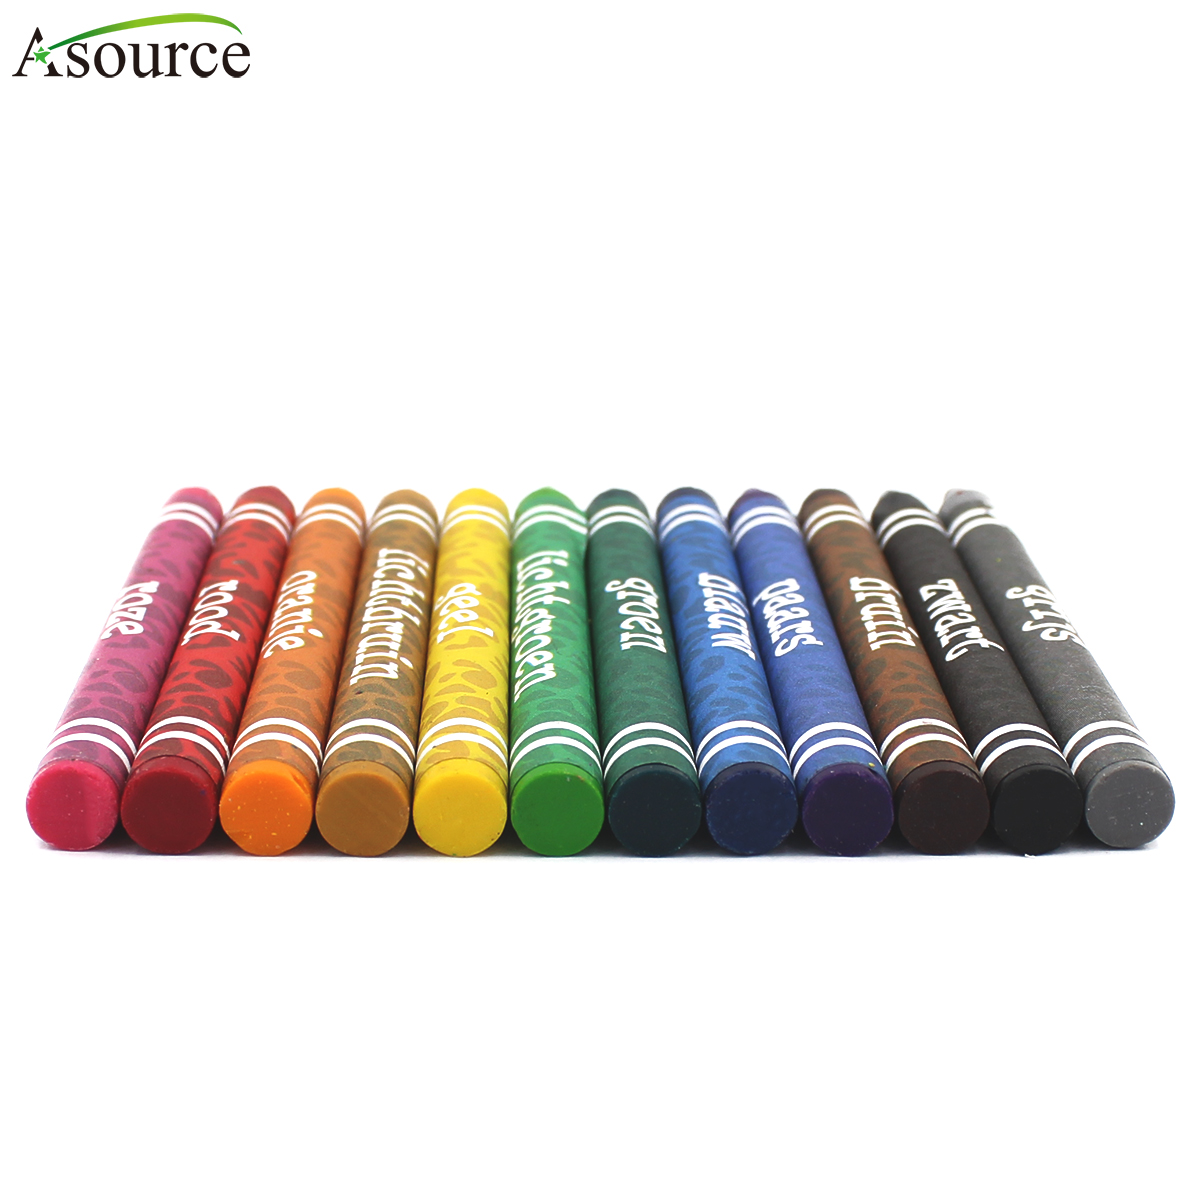 12 Pcs High Quality  Non-toxic Wax Crayon Set For Kids